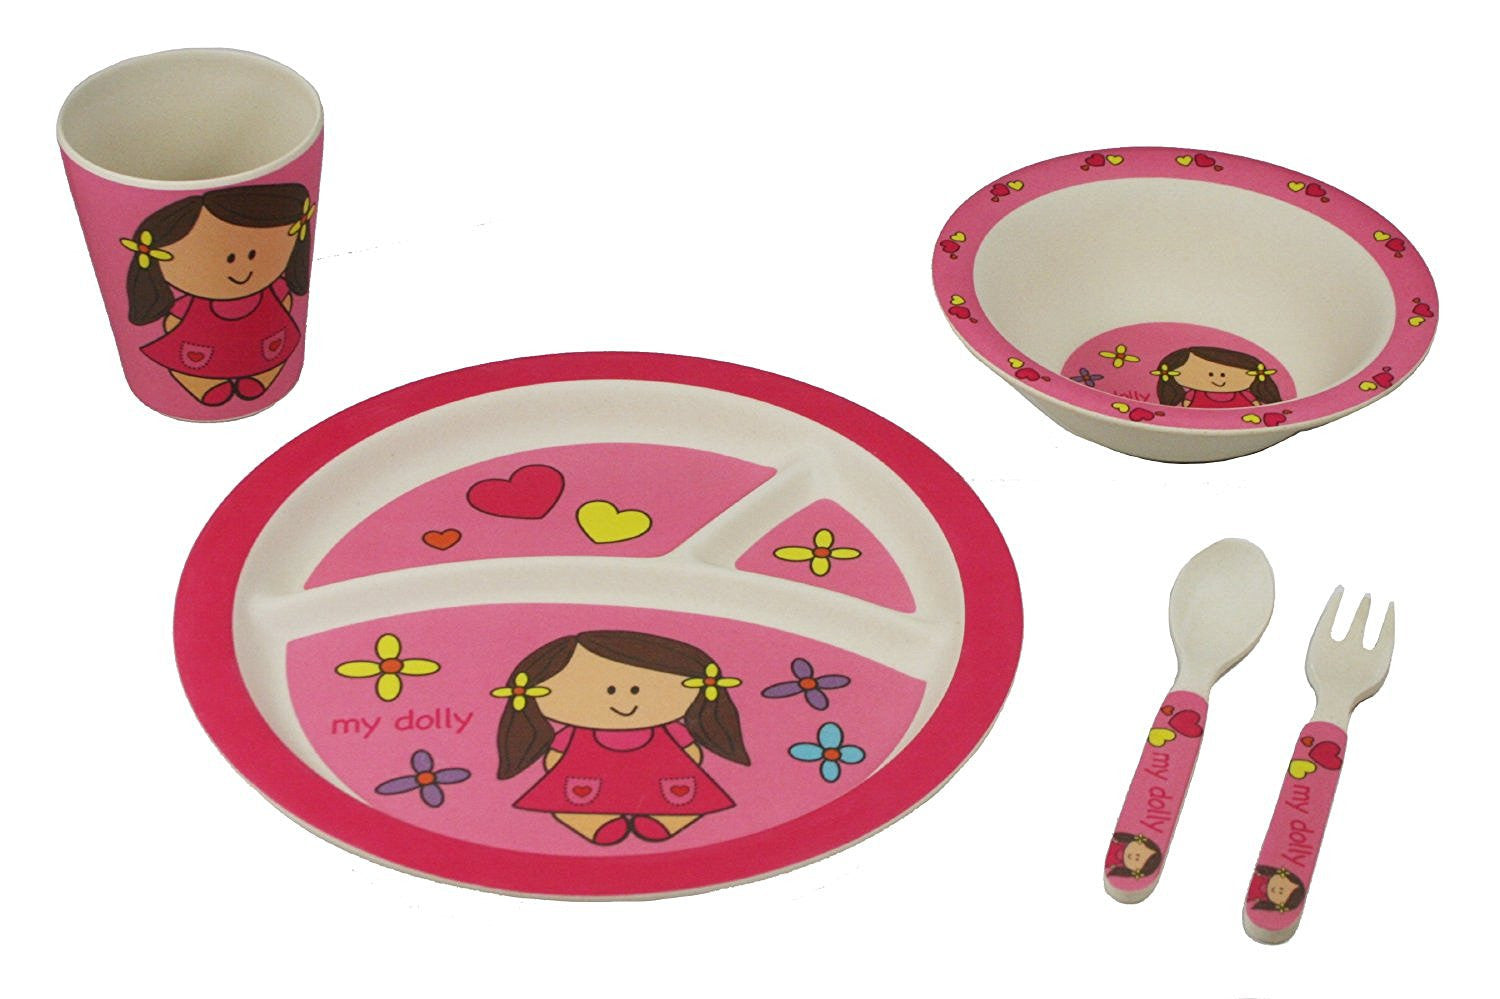 My Dolly Dinnerware Gift Set For Kids From Bamboo Studio